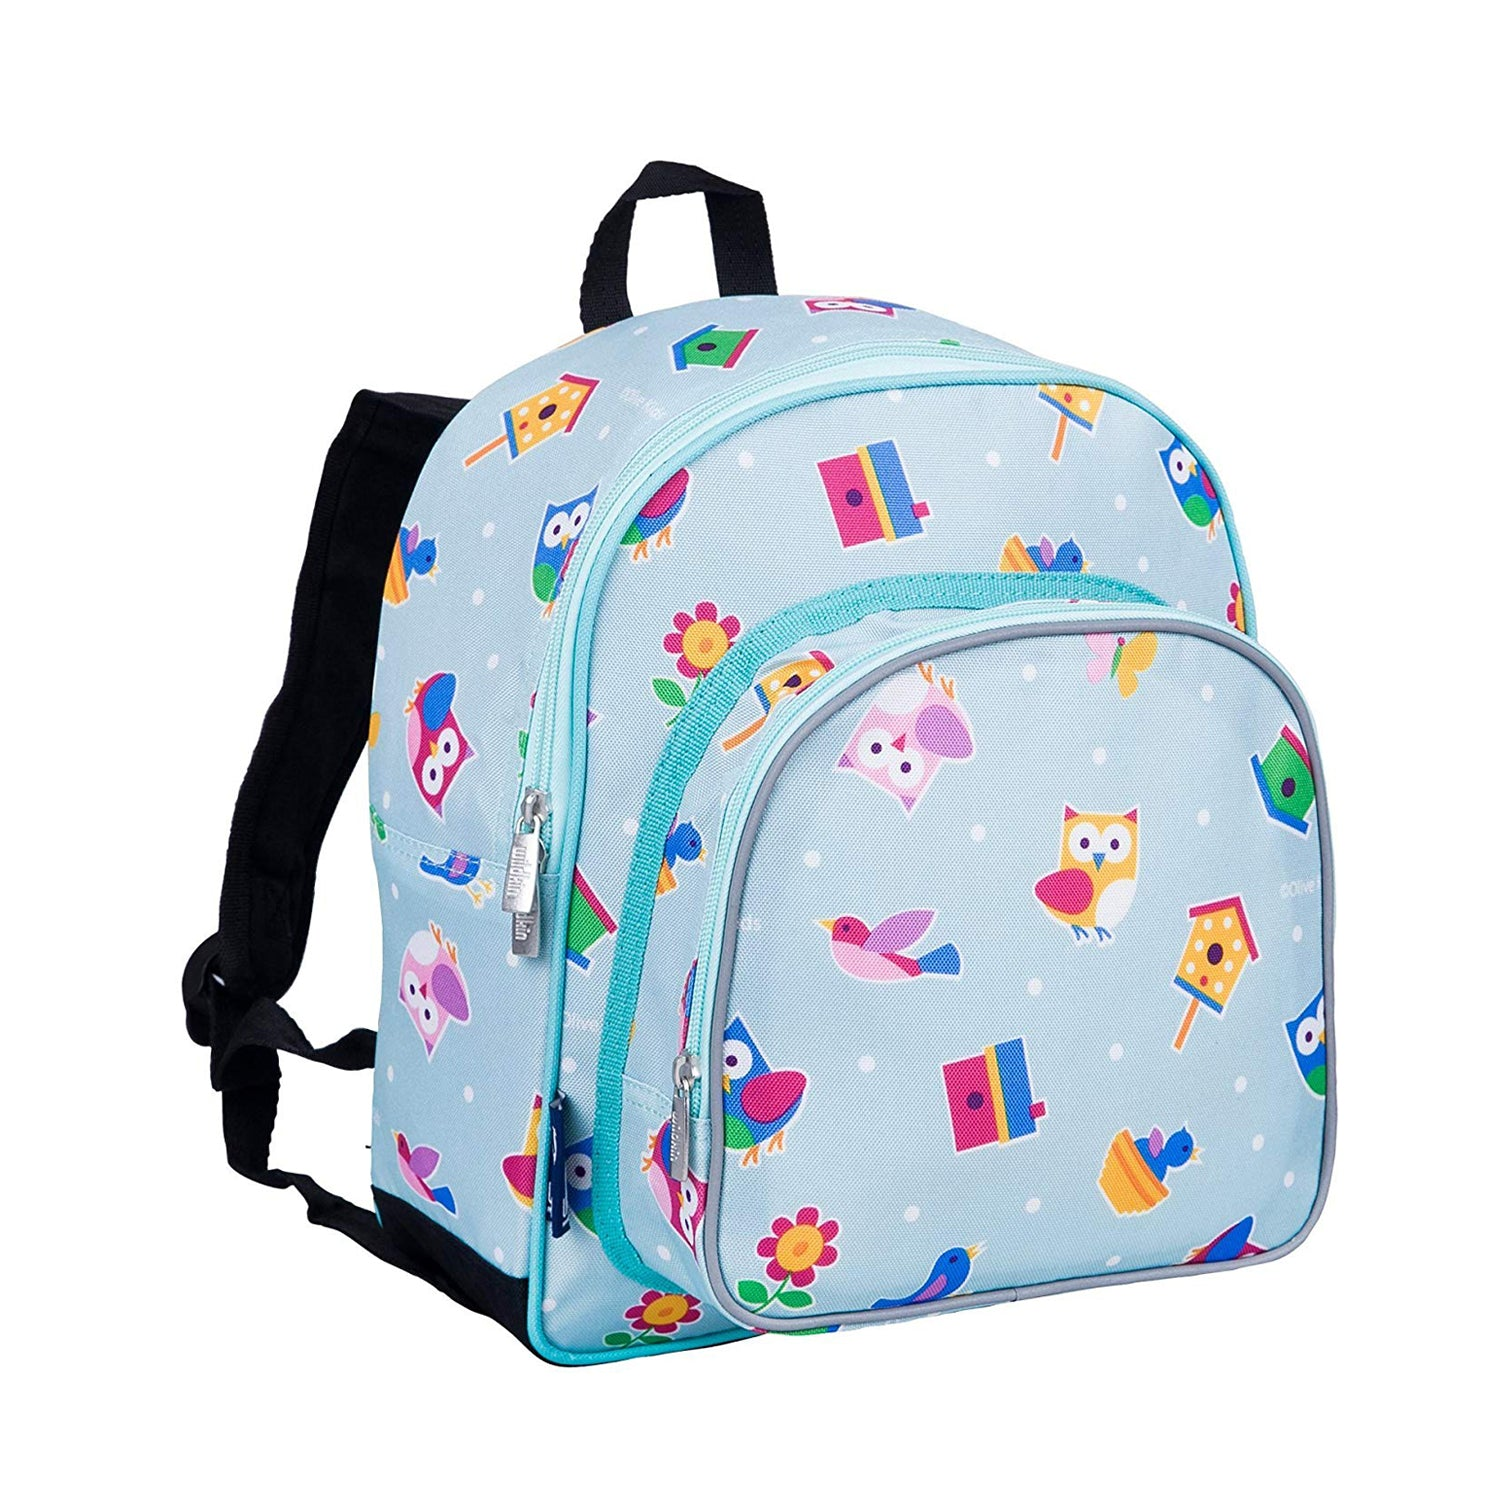 Birdie Toddler Backpack